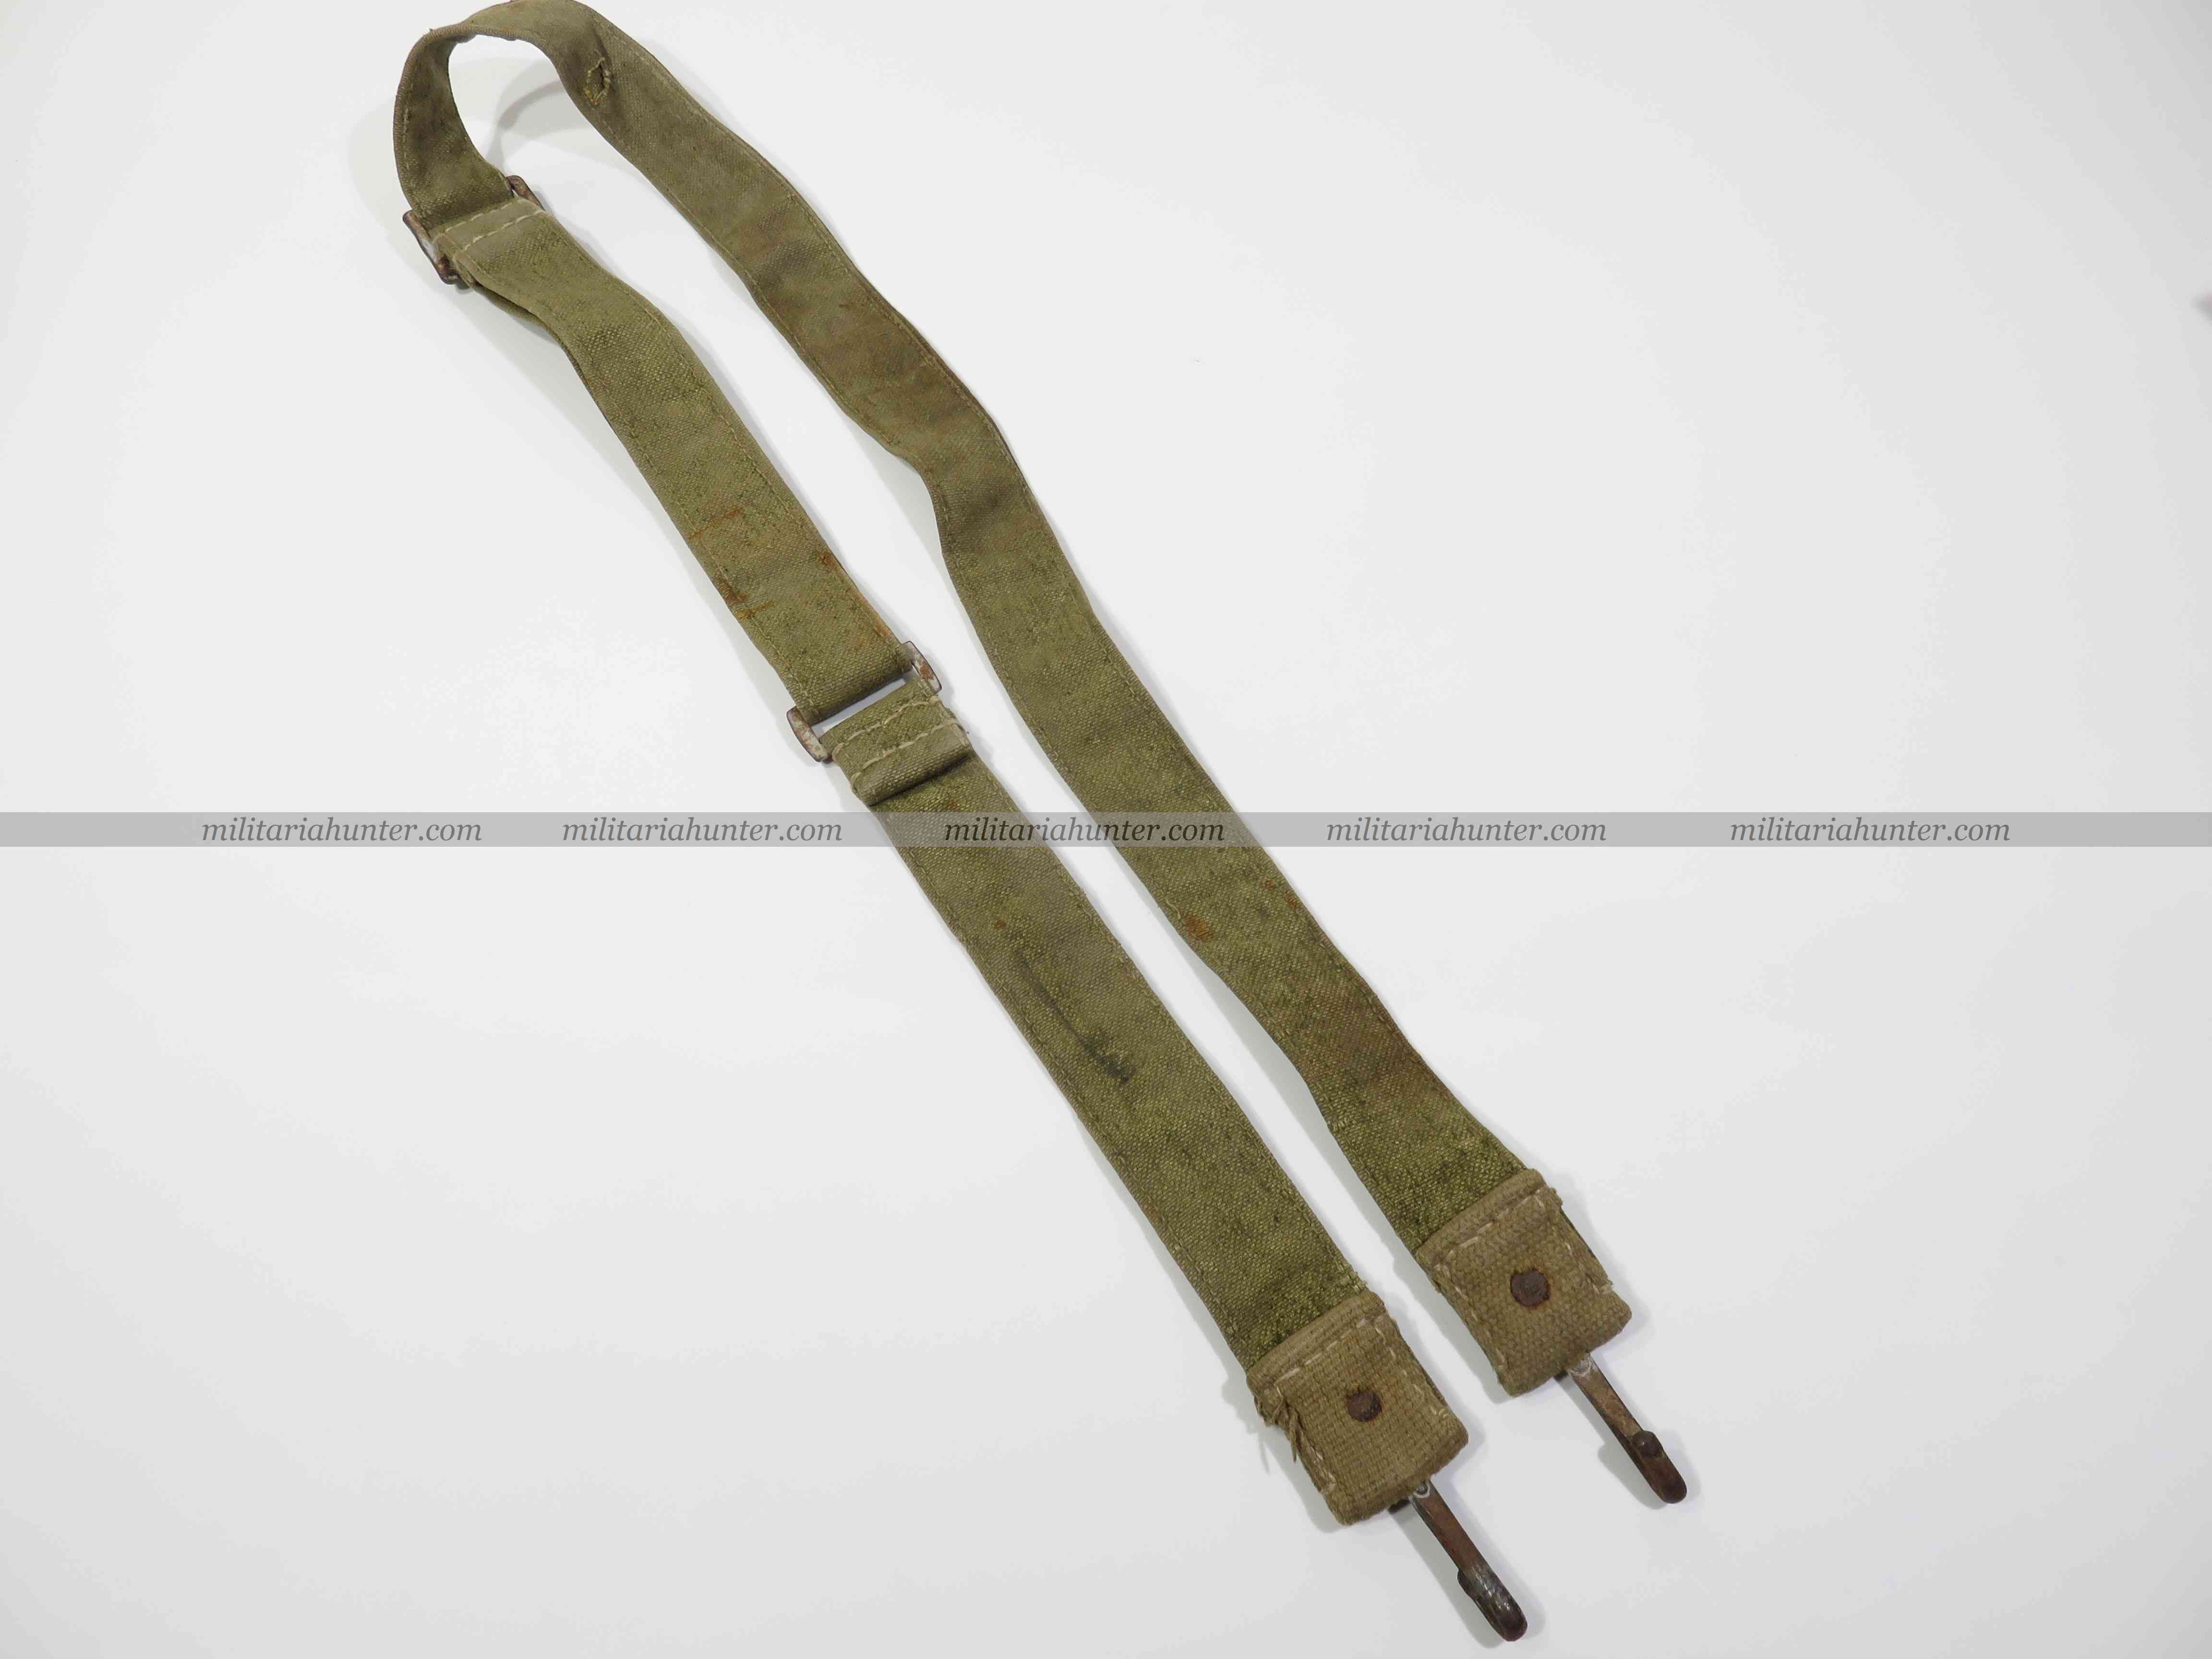 militaria : ww2 german tropical bread bag strap - sangle de sac à pain - Brotbeutel Riemen